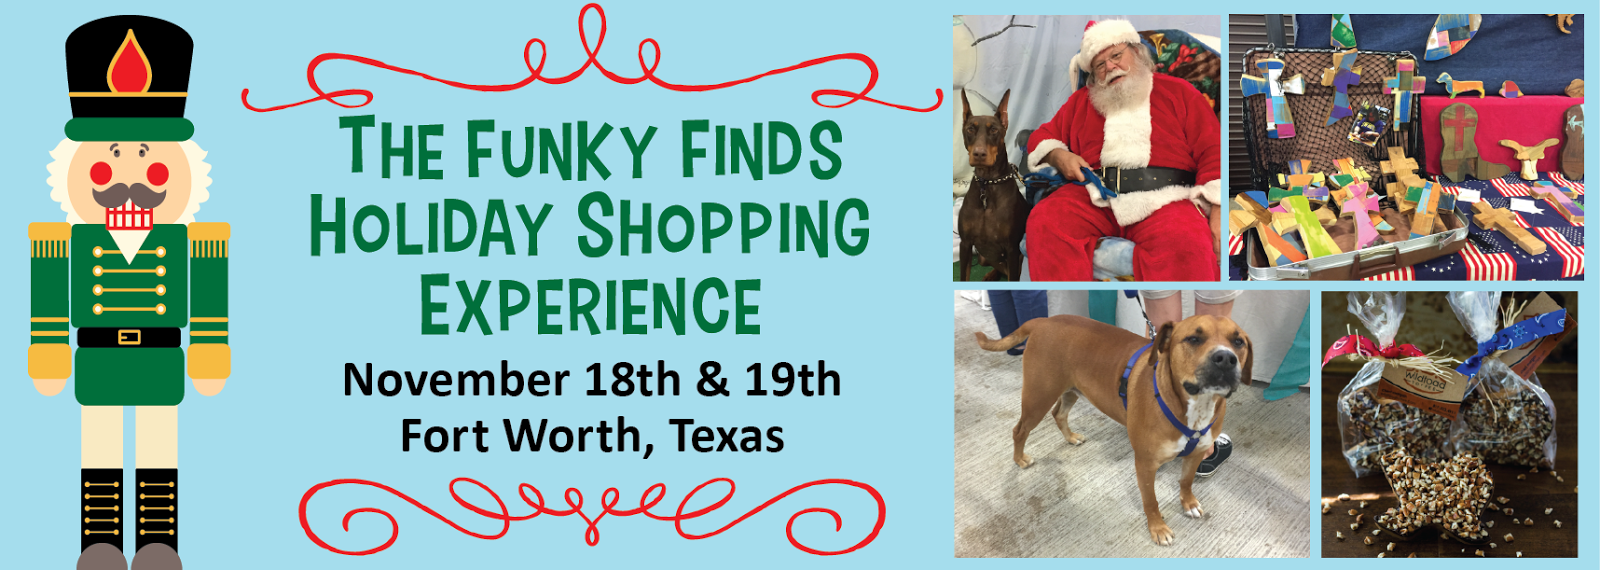 Funky finds we are now accepting vendor applications for the funky finds holiday shopping experience m4hsunfo